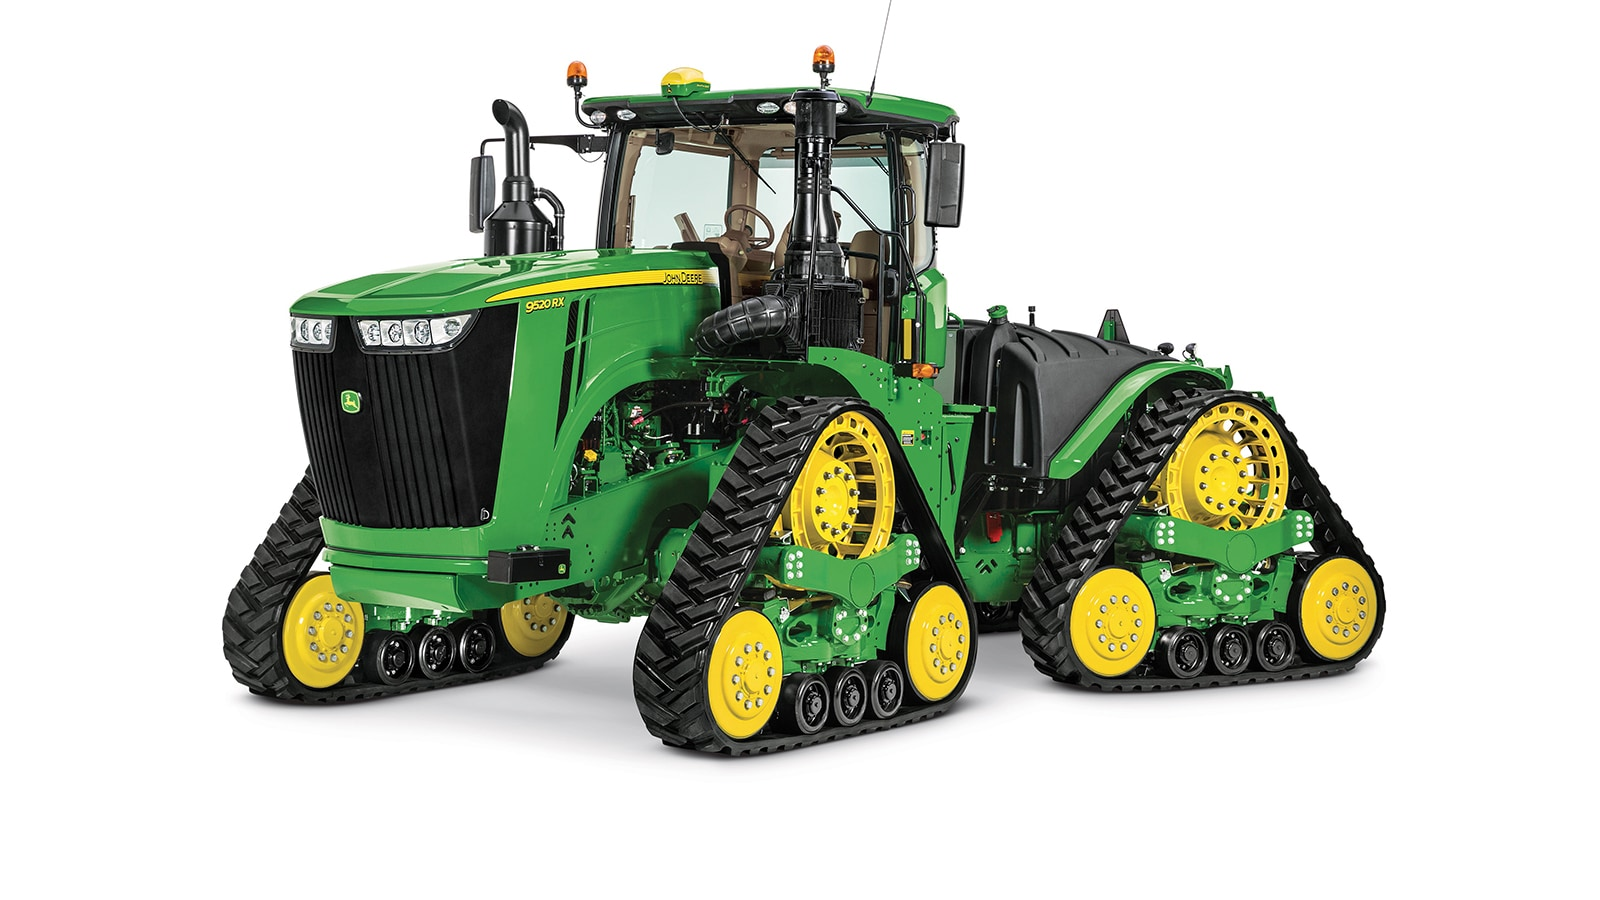 Three New Narrow Track Versions To The 9rx Tractor Lineup